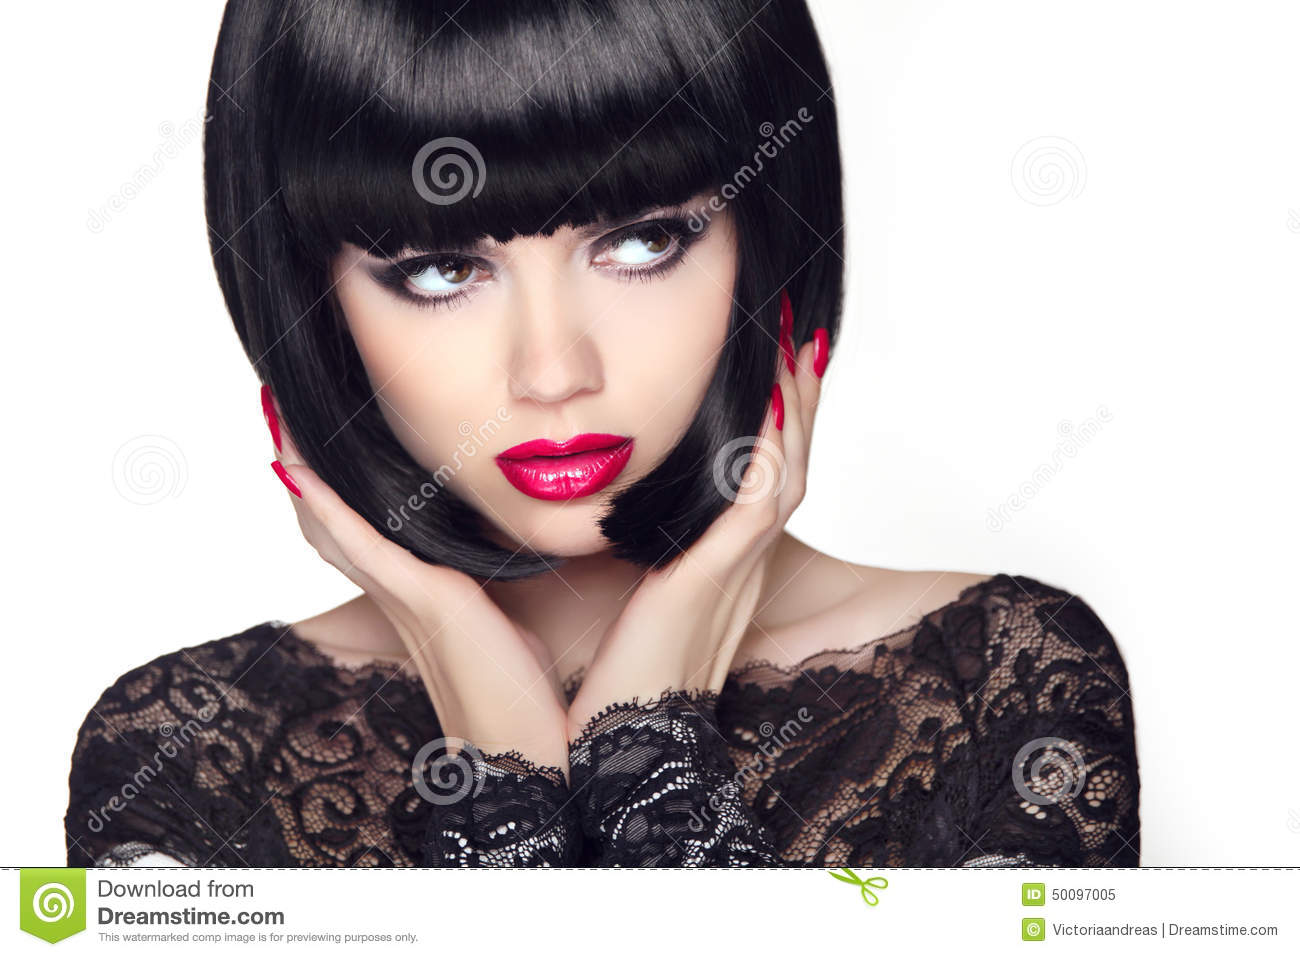 Fashion Model Girl With Trendy Hairstyle. Haircut. Stylish